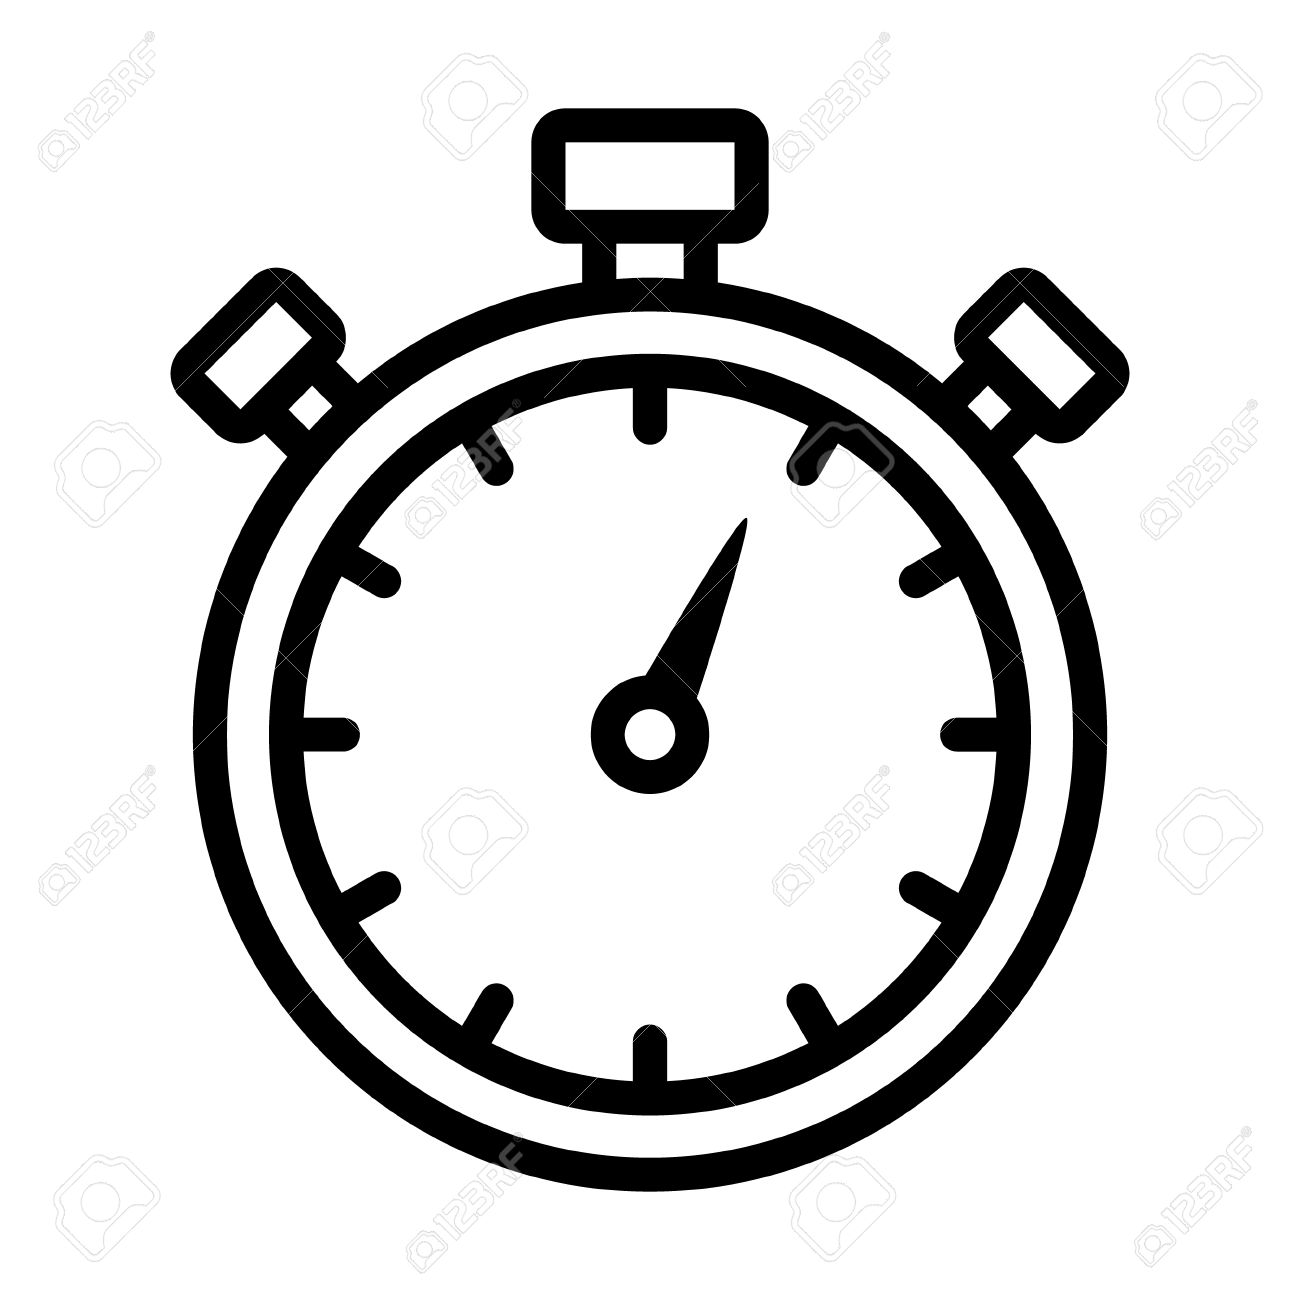 Stopwatch timer line art icon for apps and websites Stock Vector - 49796815